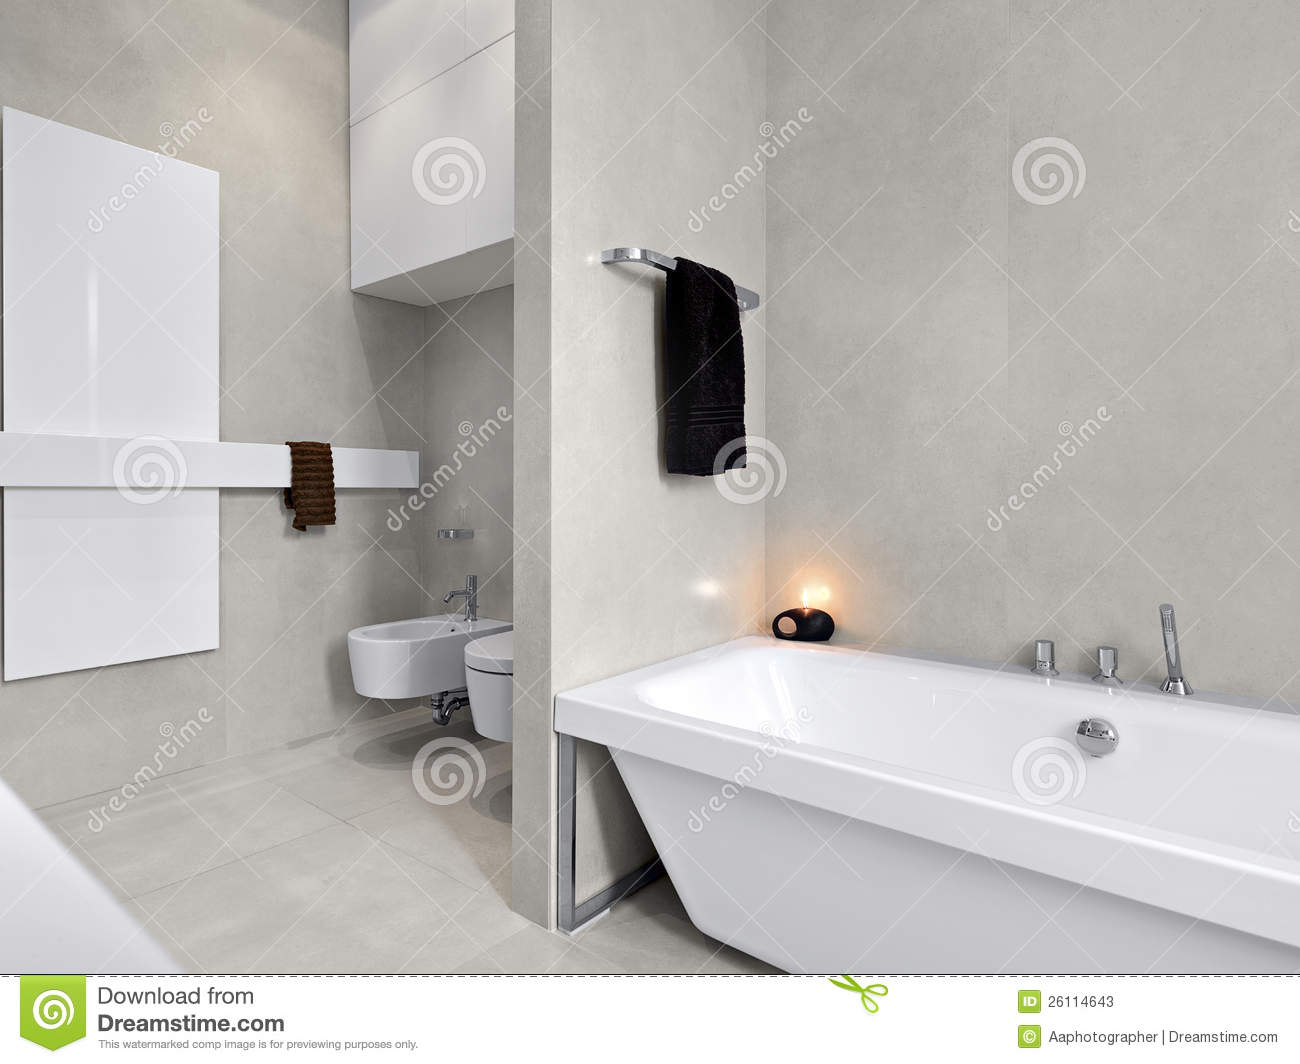 vasca da bagno bianca moderna per la stanza da bagno immagine stock immagine di bathtub. Black Bedroom Furniture Sets. Home Design Ideas